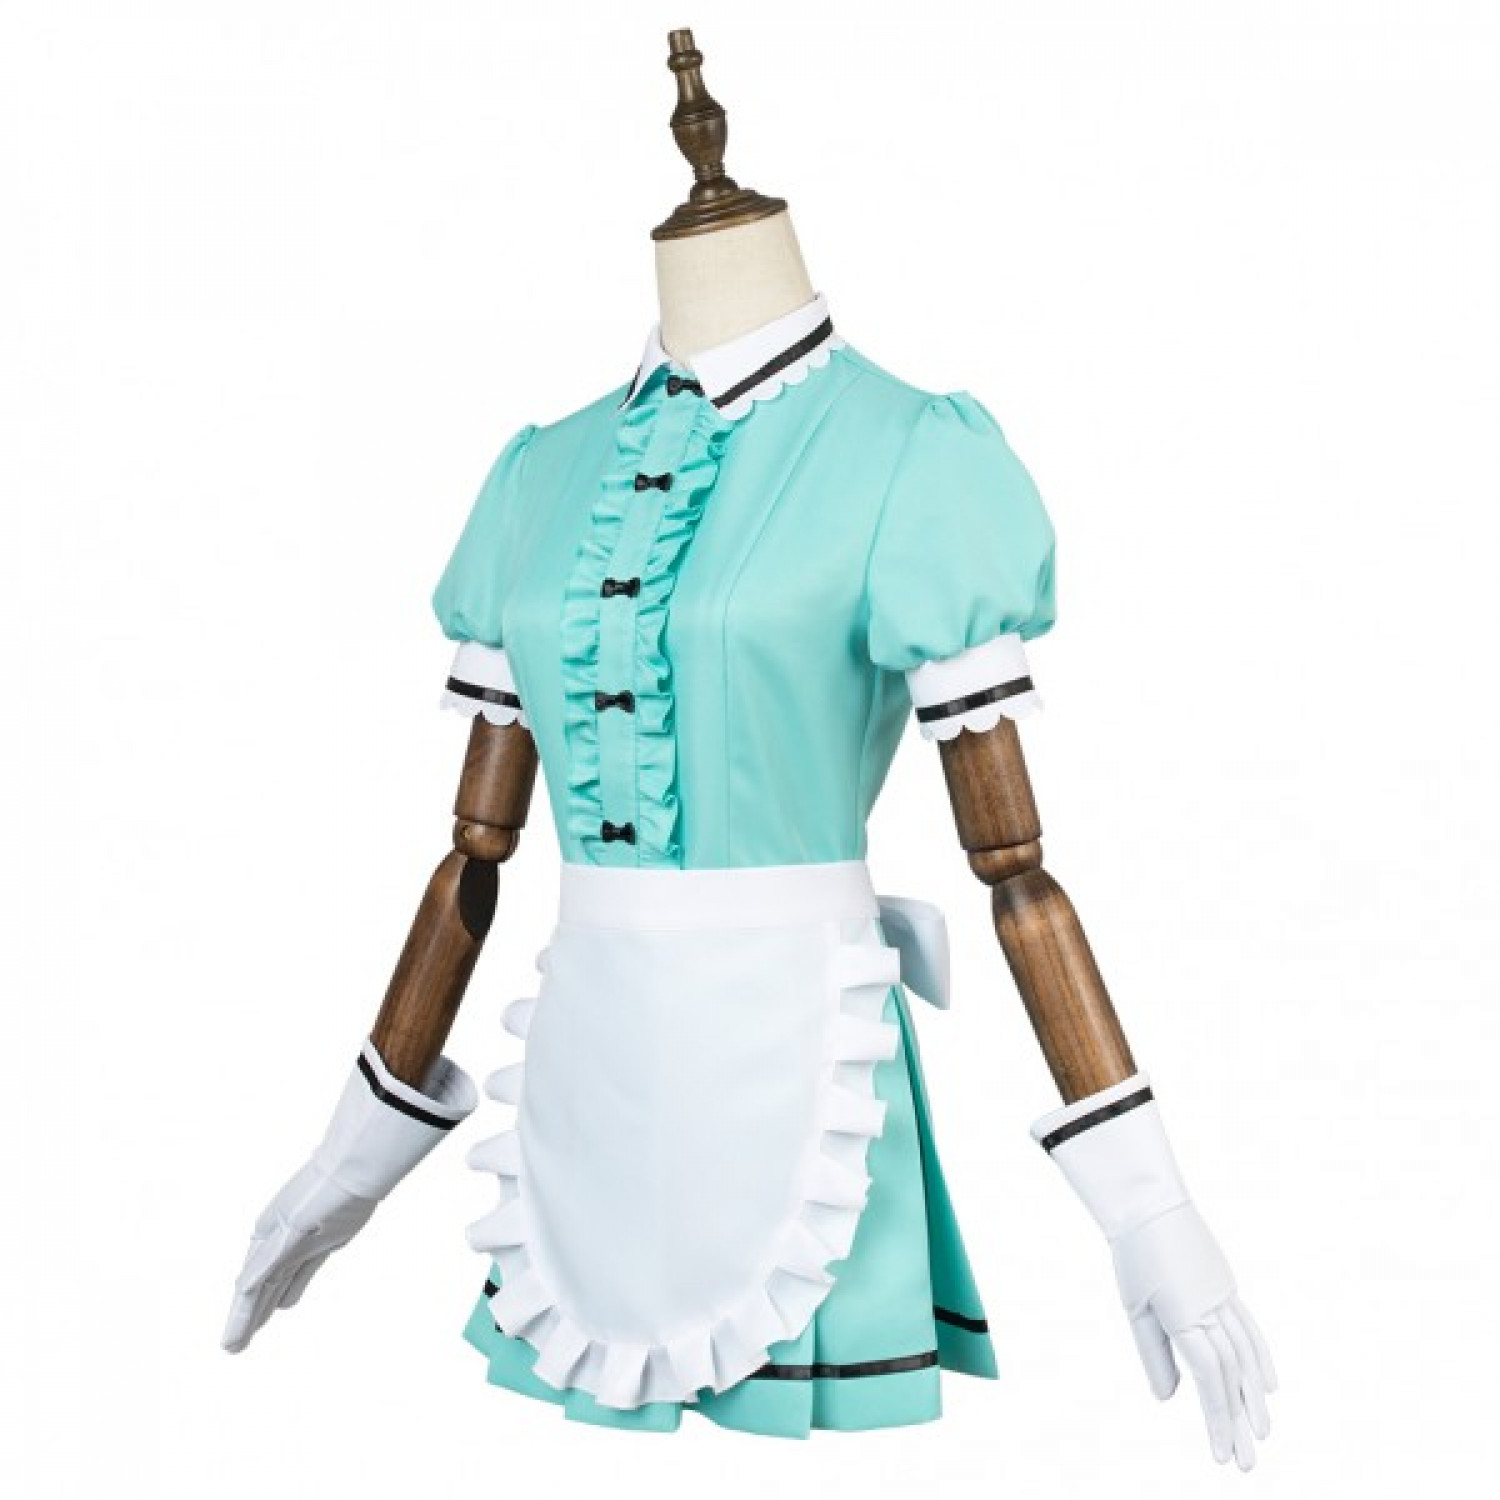 Blend S Kanzaki Hideri Maid Waitress Maid Outfit Cosplay Costume